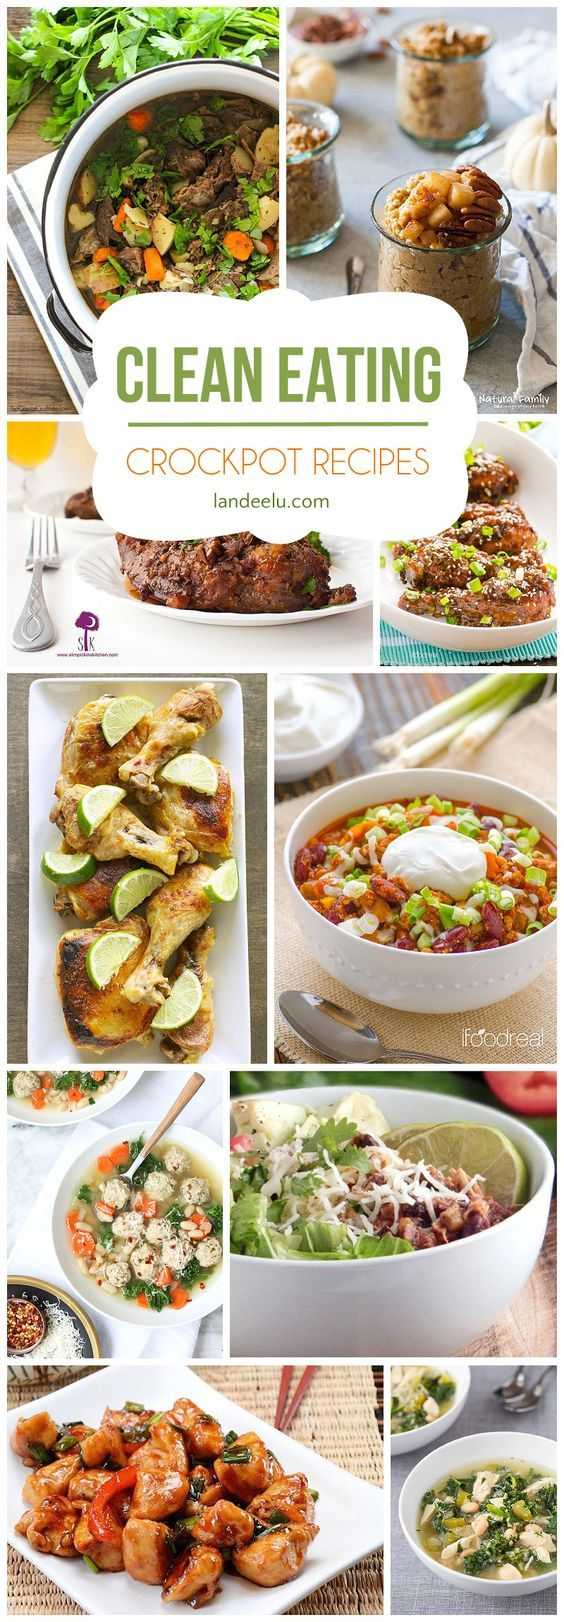 Delicious Clean Eating Crockpot Recipes #simplehealthydinner